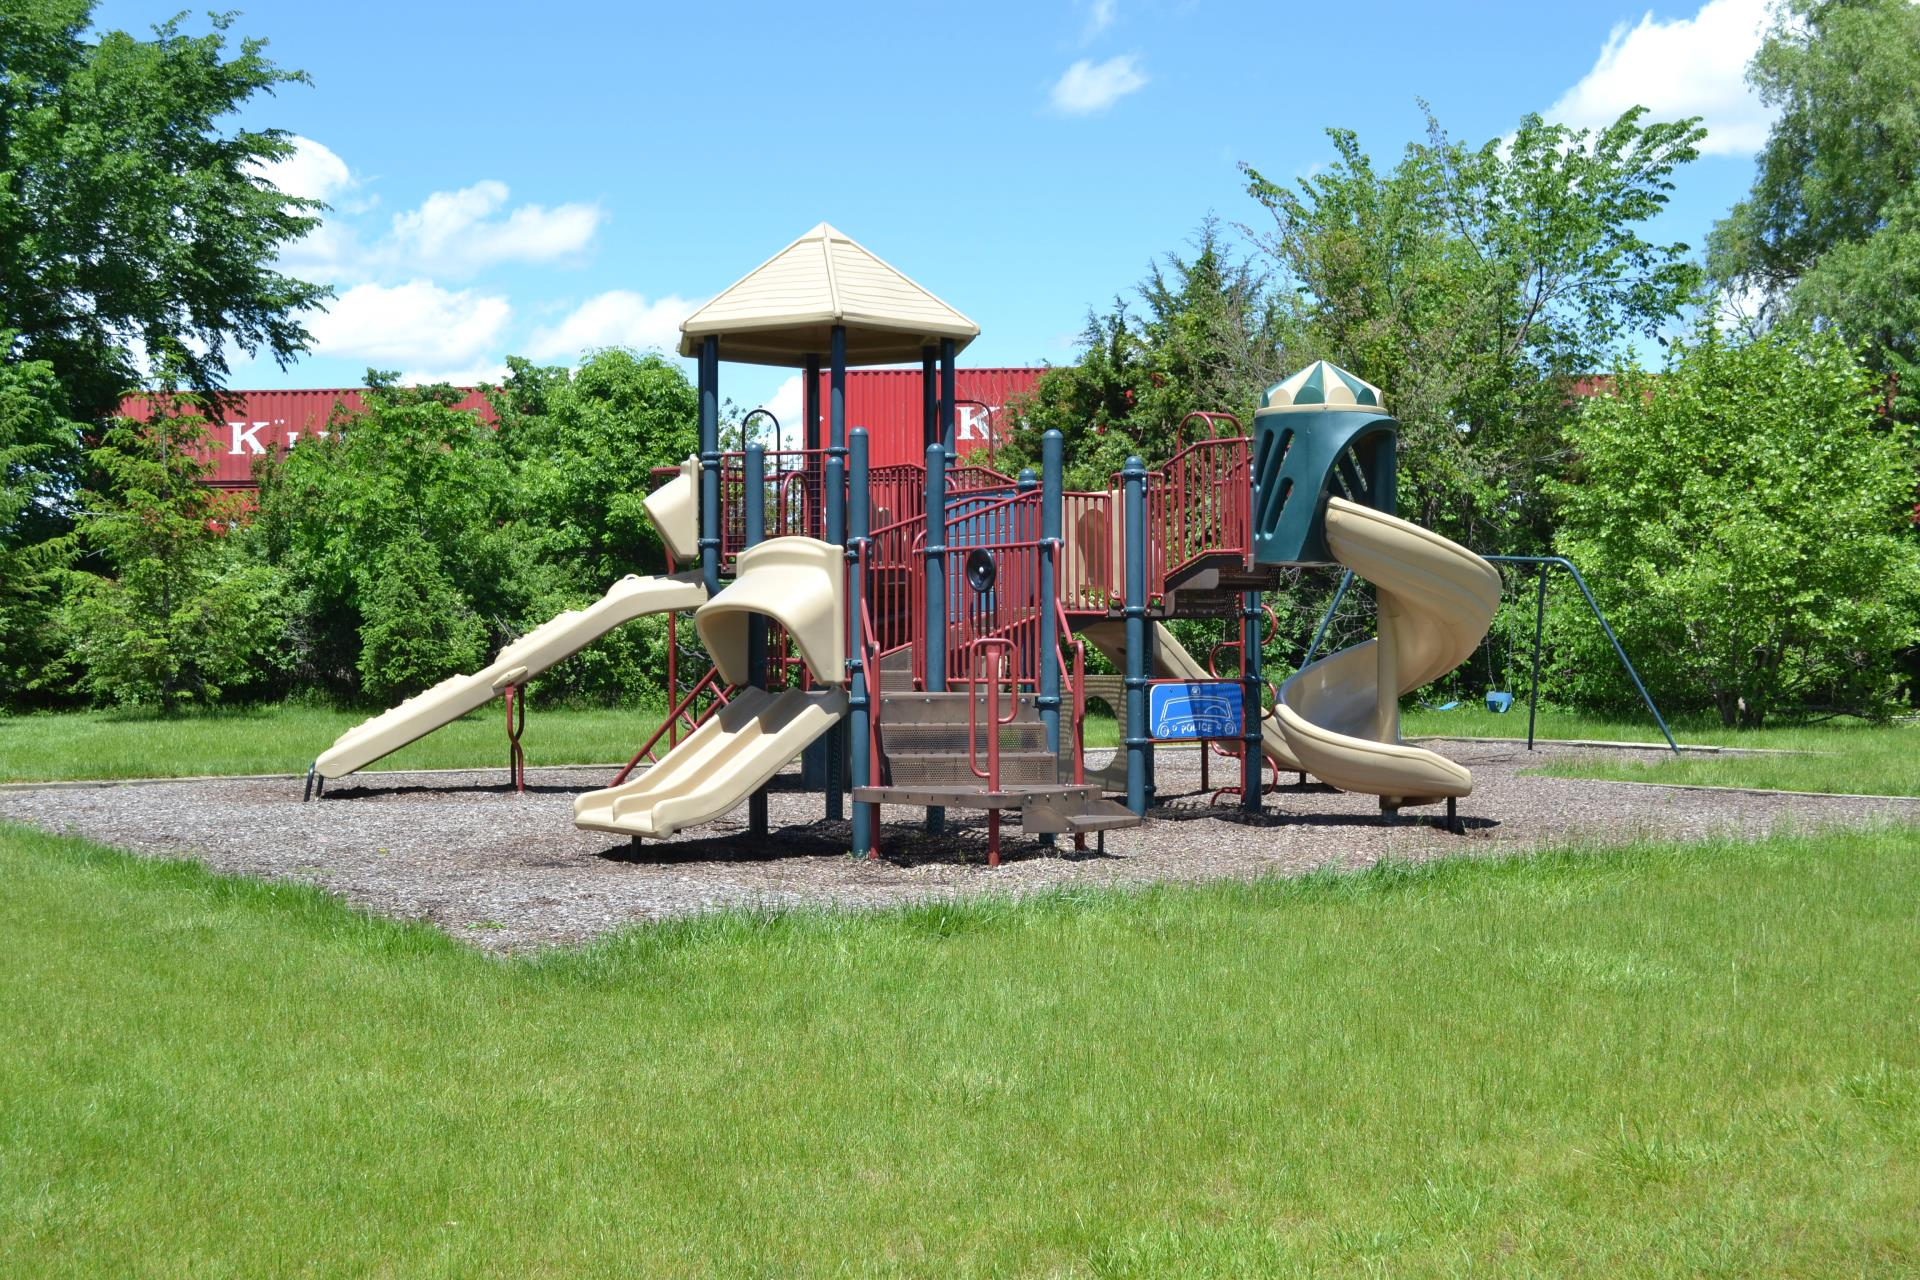 Playground equipment at Patio Homes West